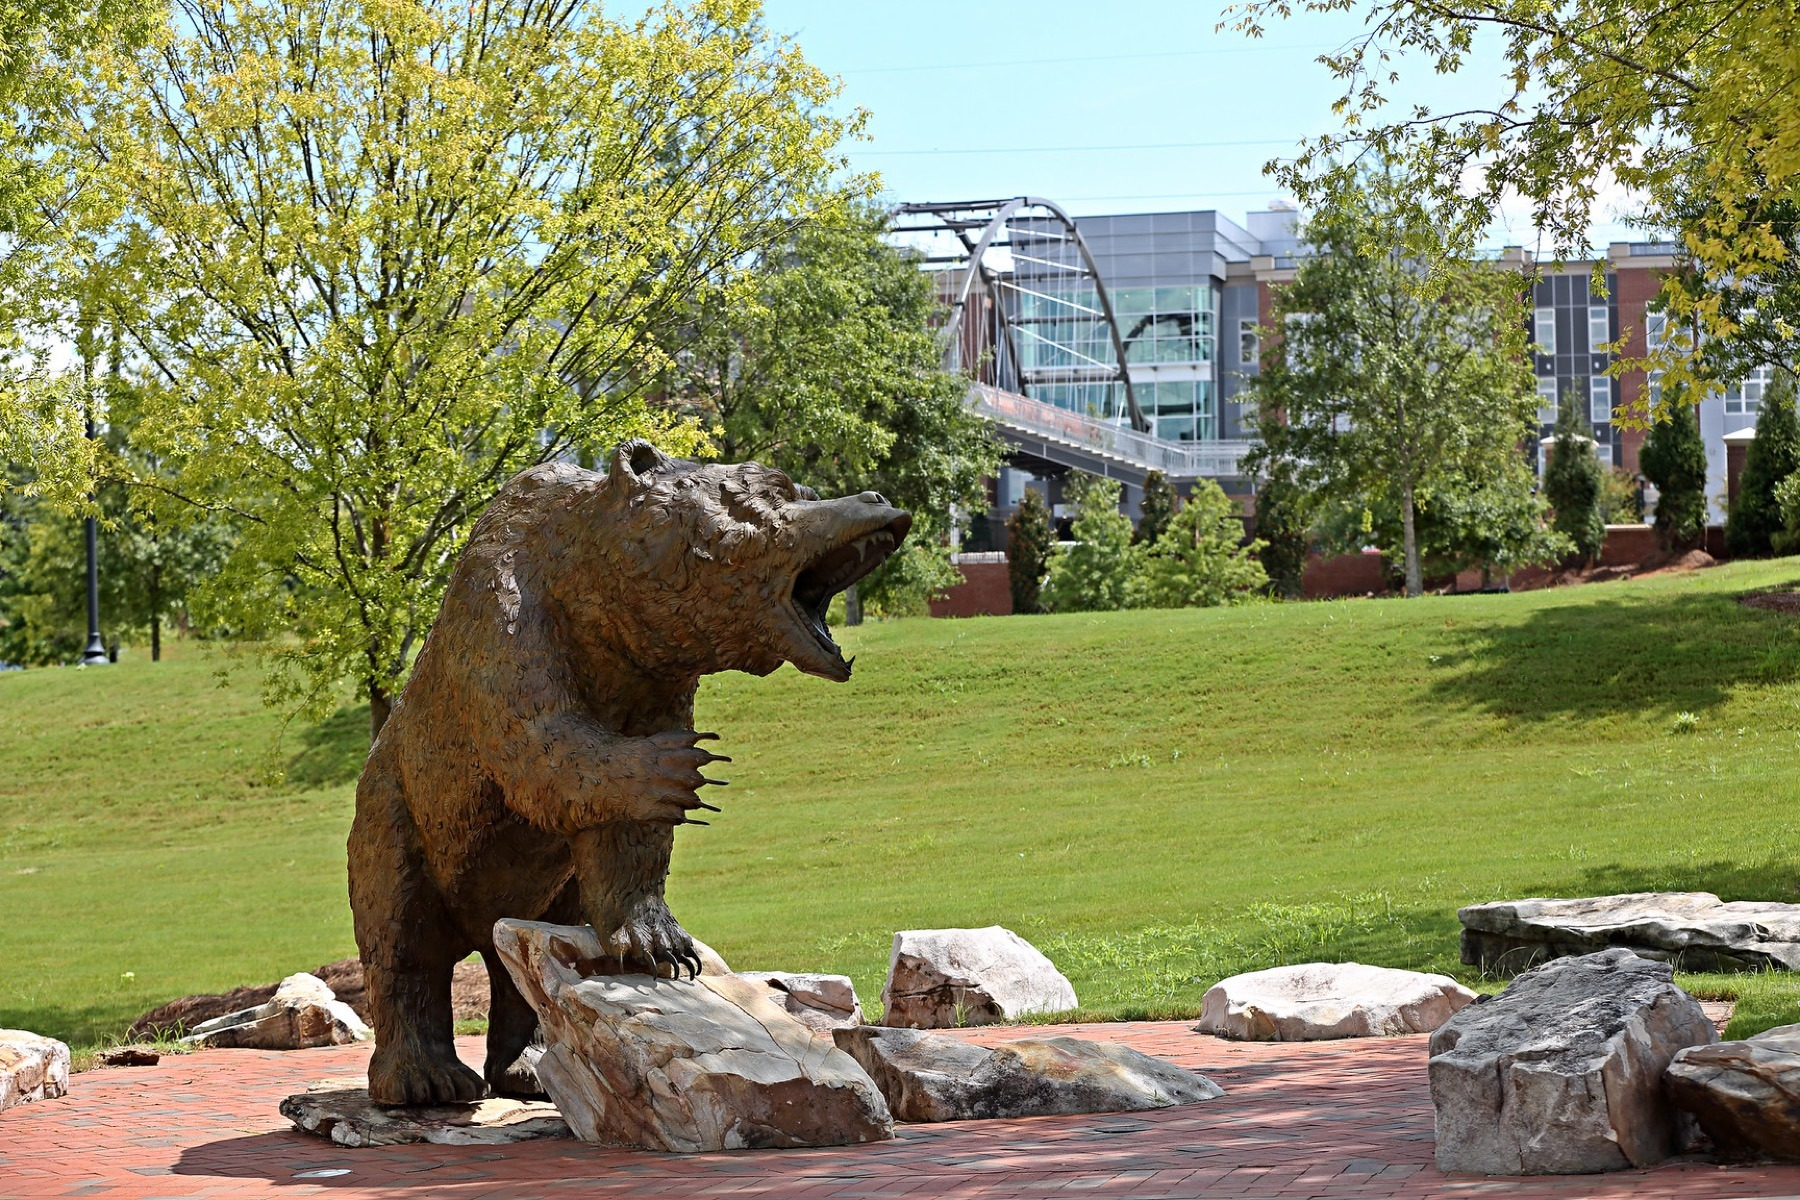 A bear statue is pictured, with the Lofts at Mercer Landing and pedestrian bridge in the background.